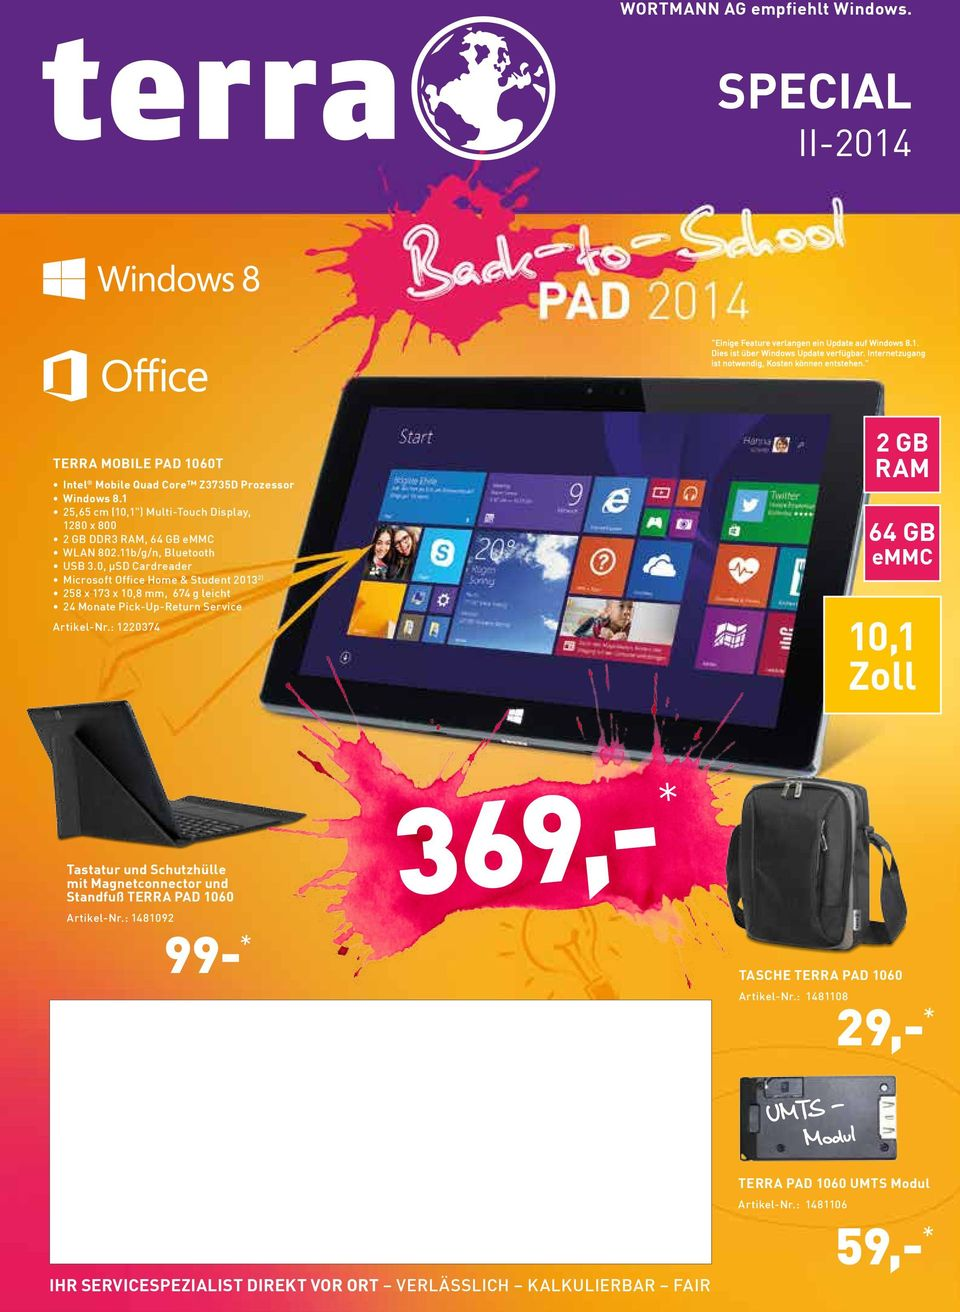 0, µsd Cardreader Microsoft Office Home & Student 2013 2) 258 x 173 x 10,8 mm, 674 g leicht Artikel-Nr.